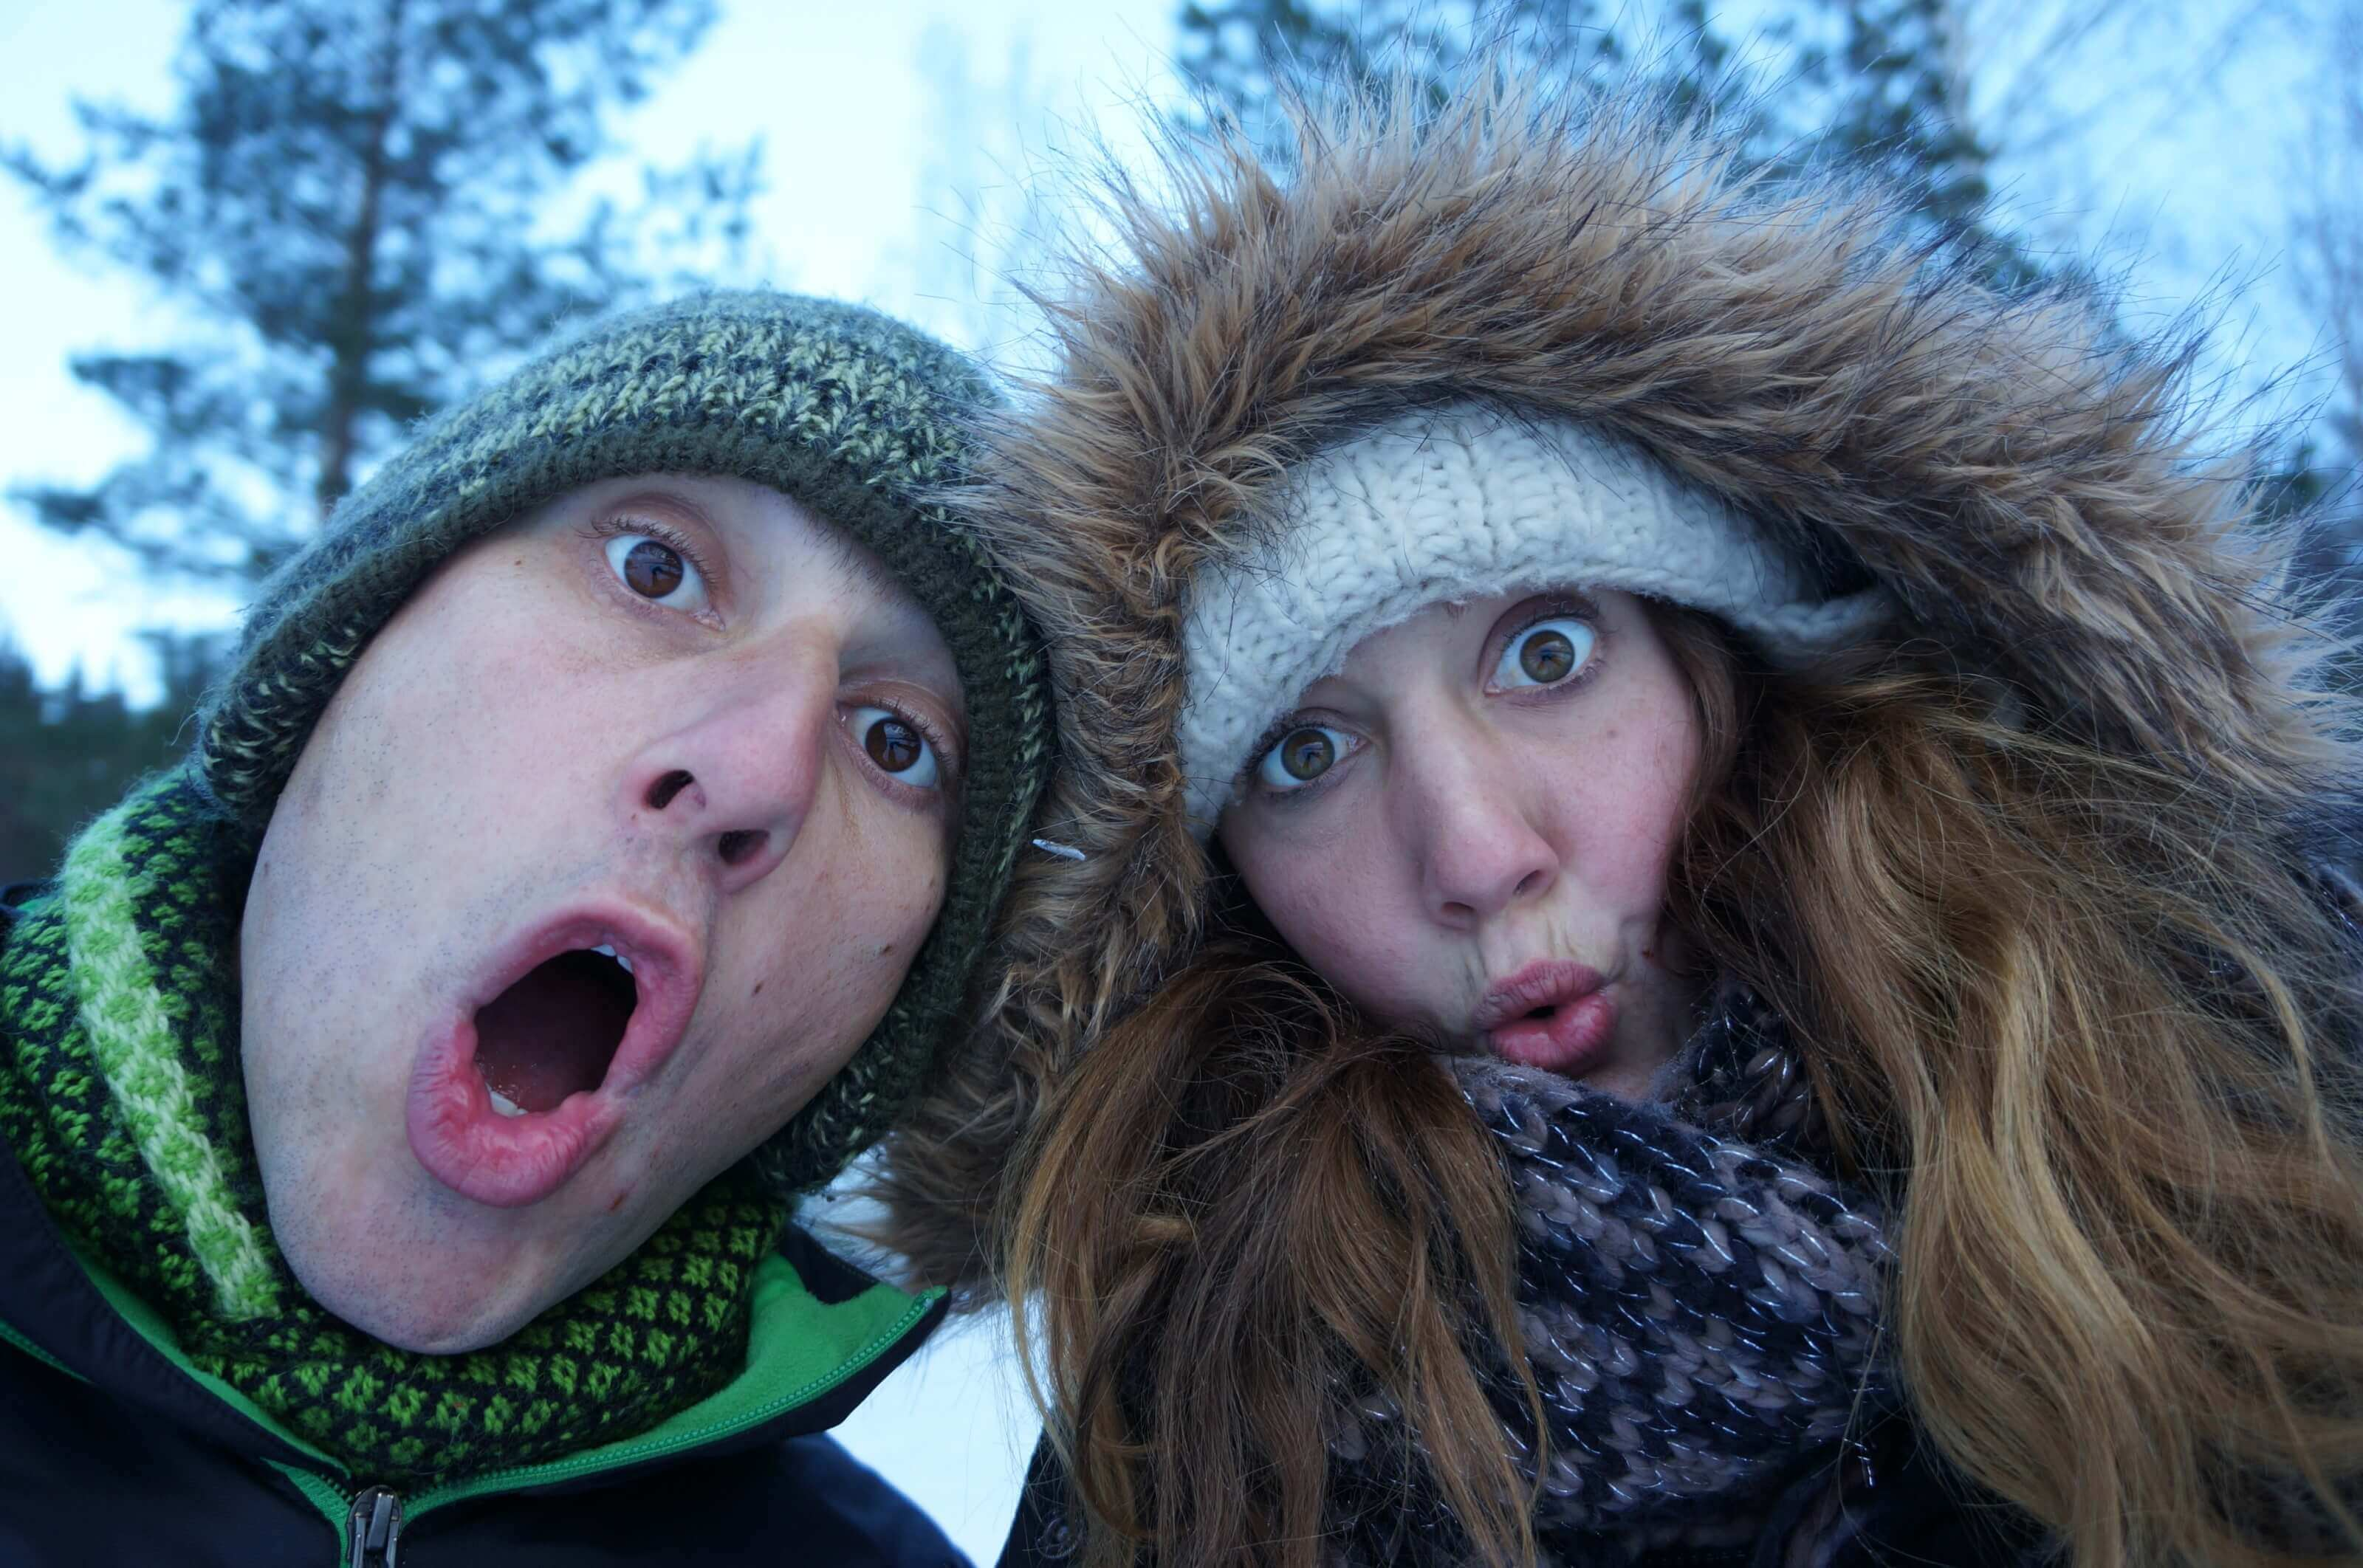 Fabienne and Benoit in Finland